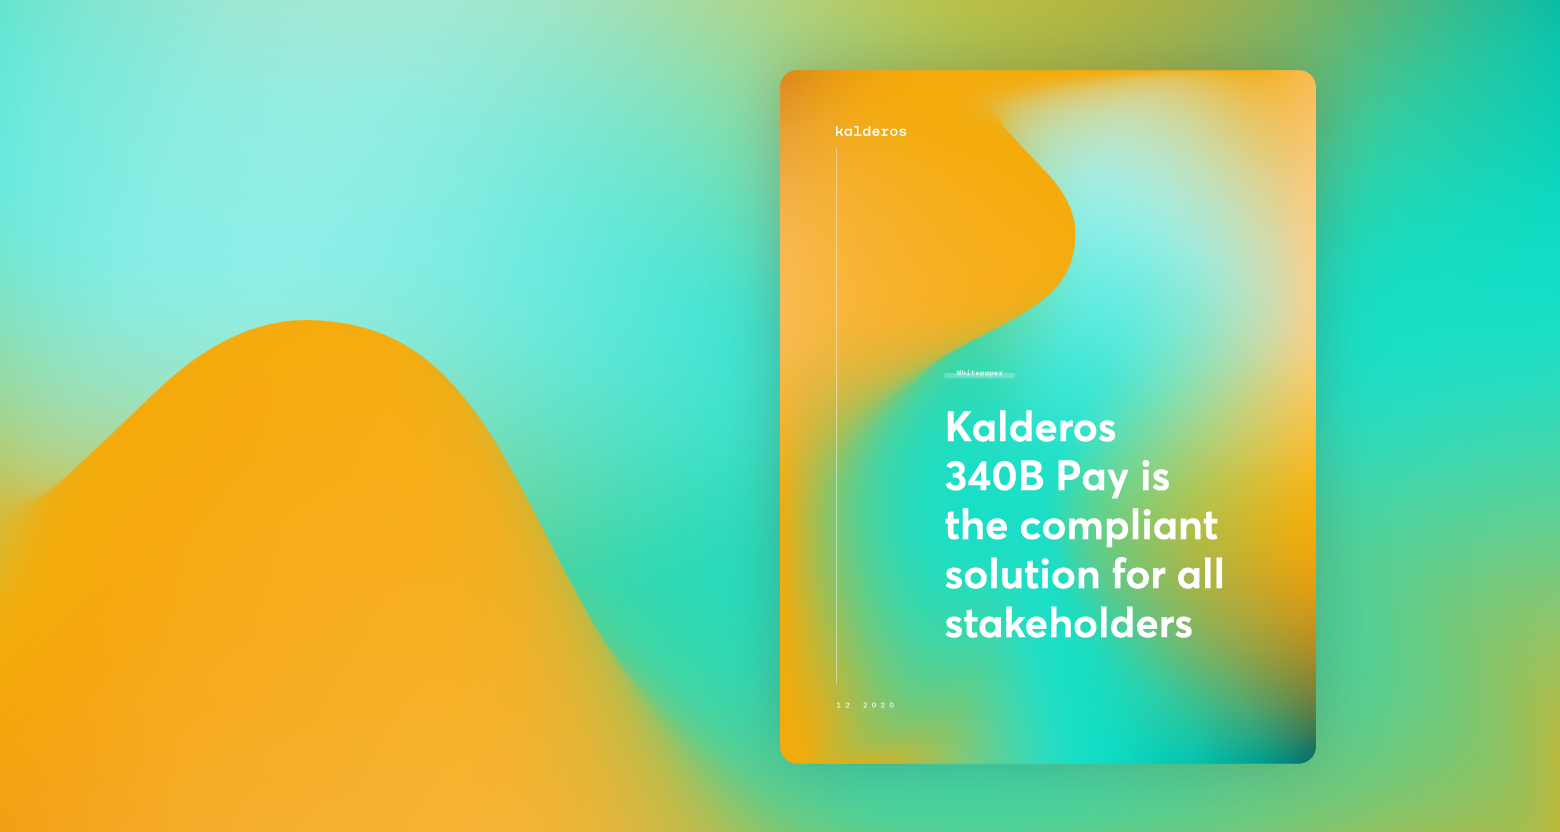 Kalderos 340B Pay is the compliant solution for all stakeholders whitepaper cover